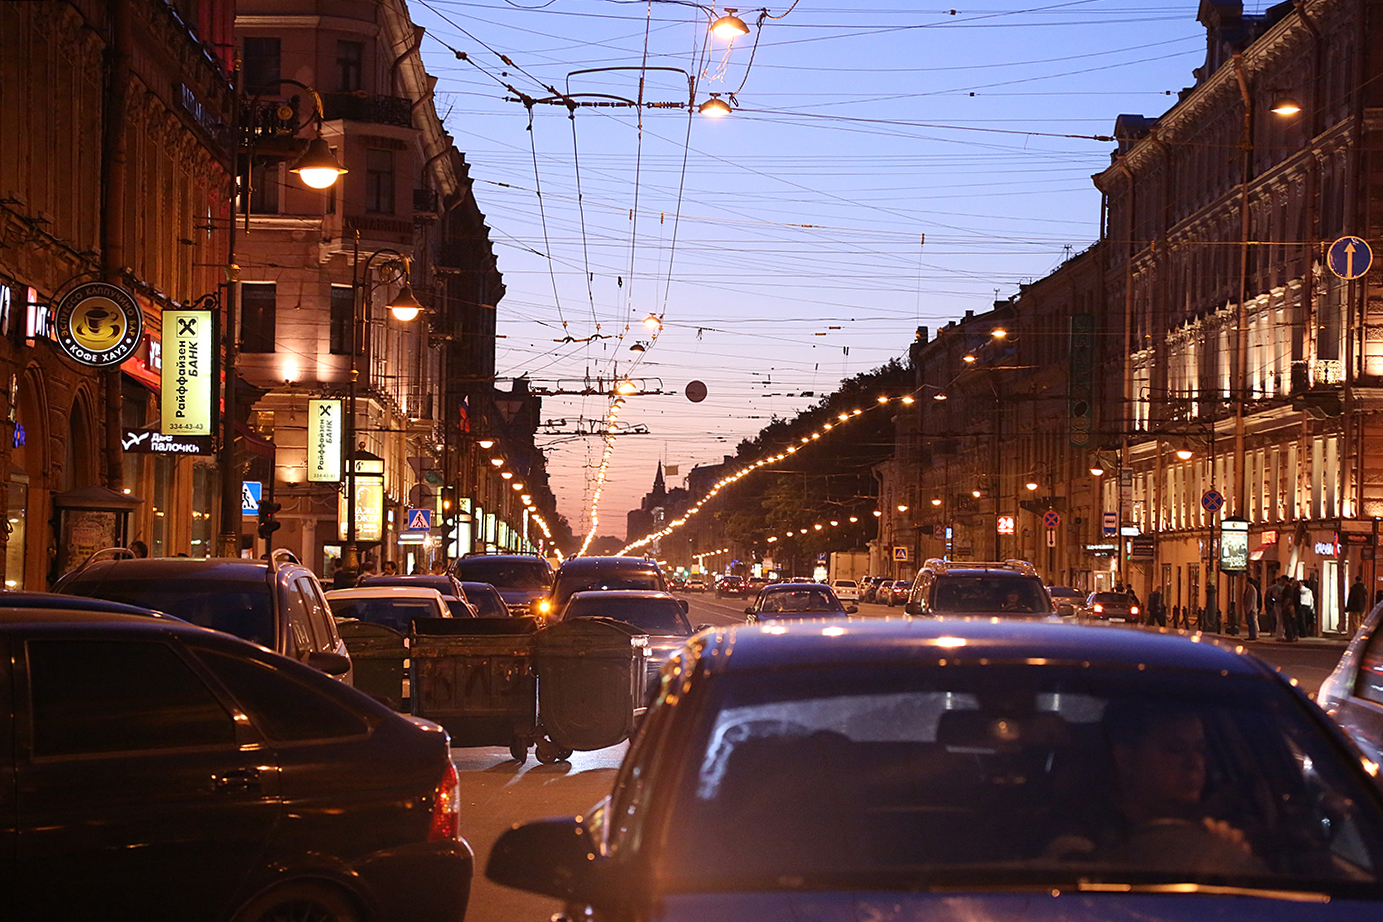 Russia, Saint-Petersburg